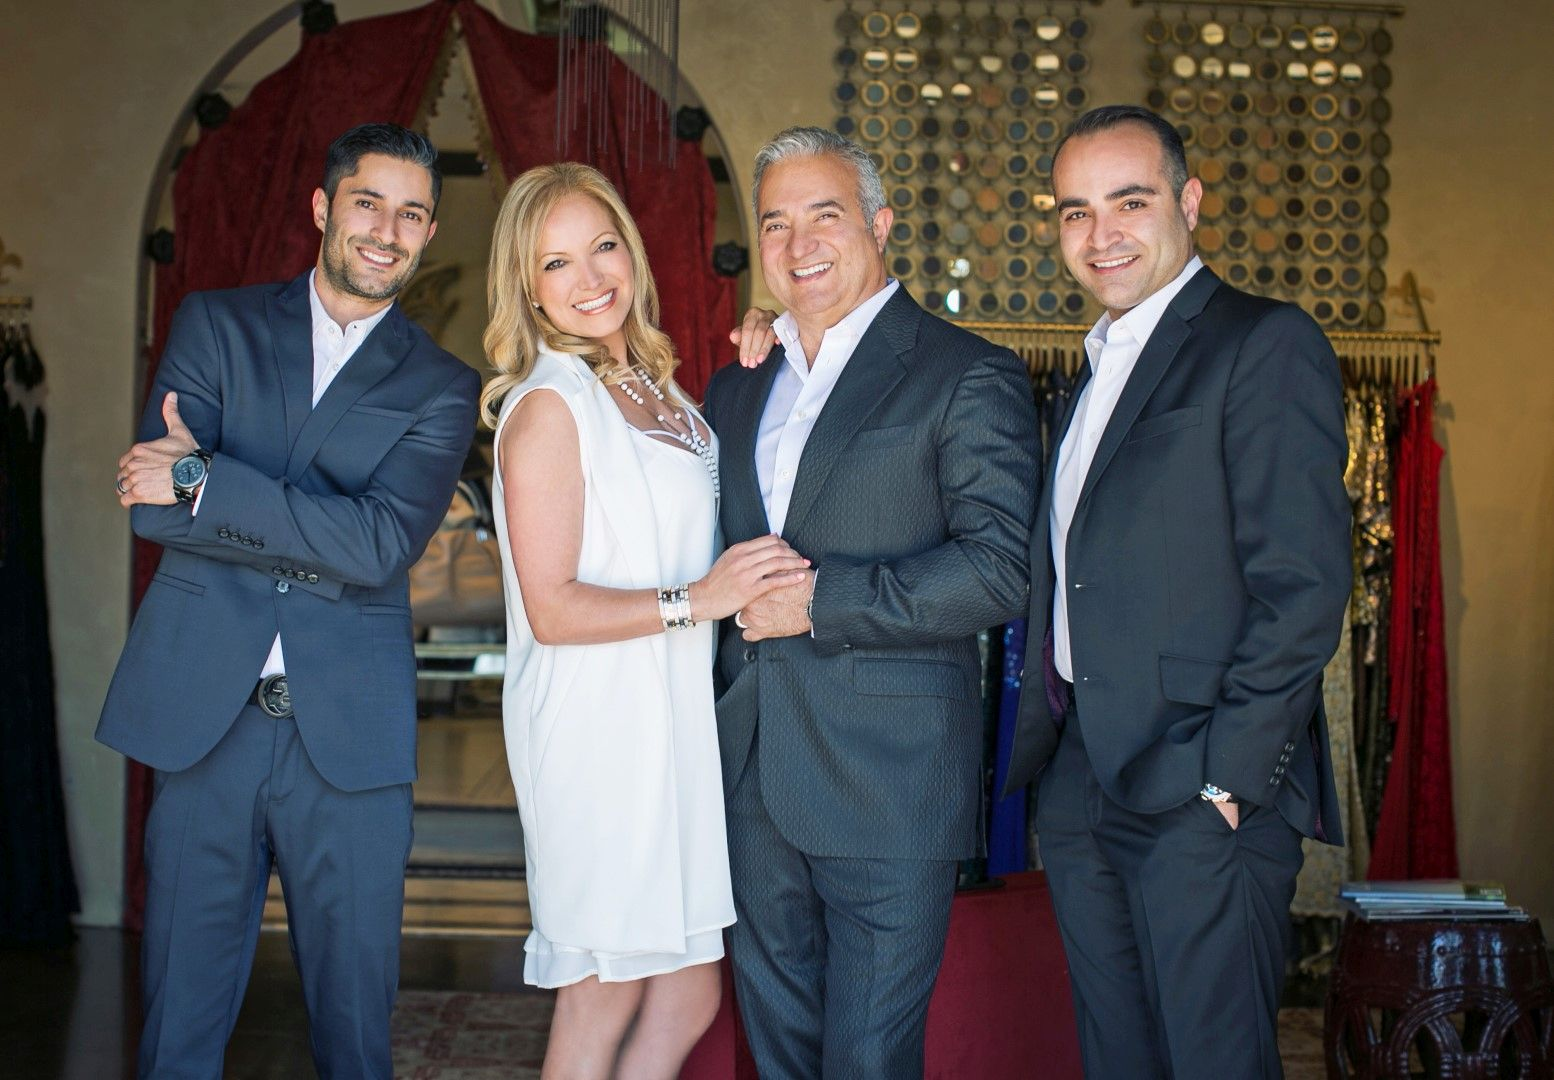 Corporate Photography - Group Shots - 021